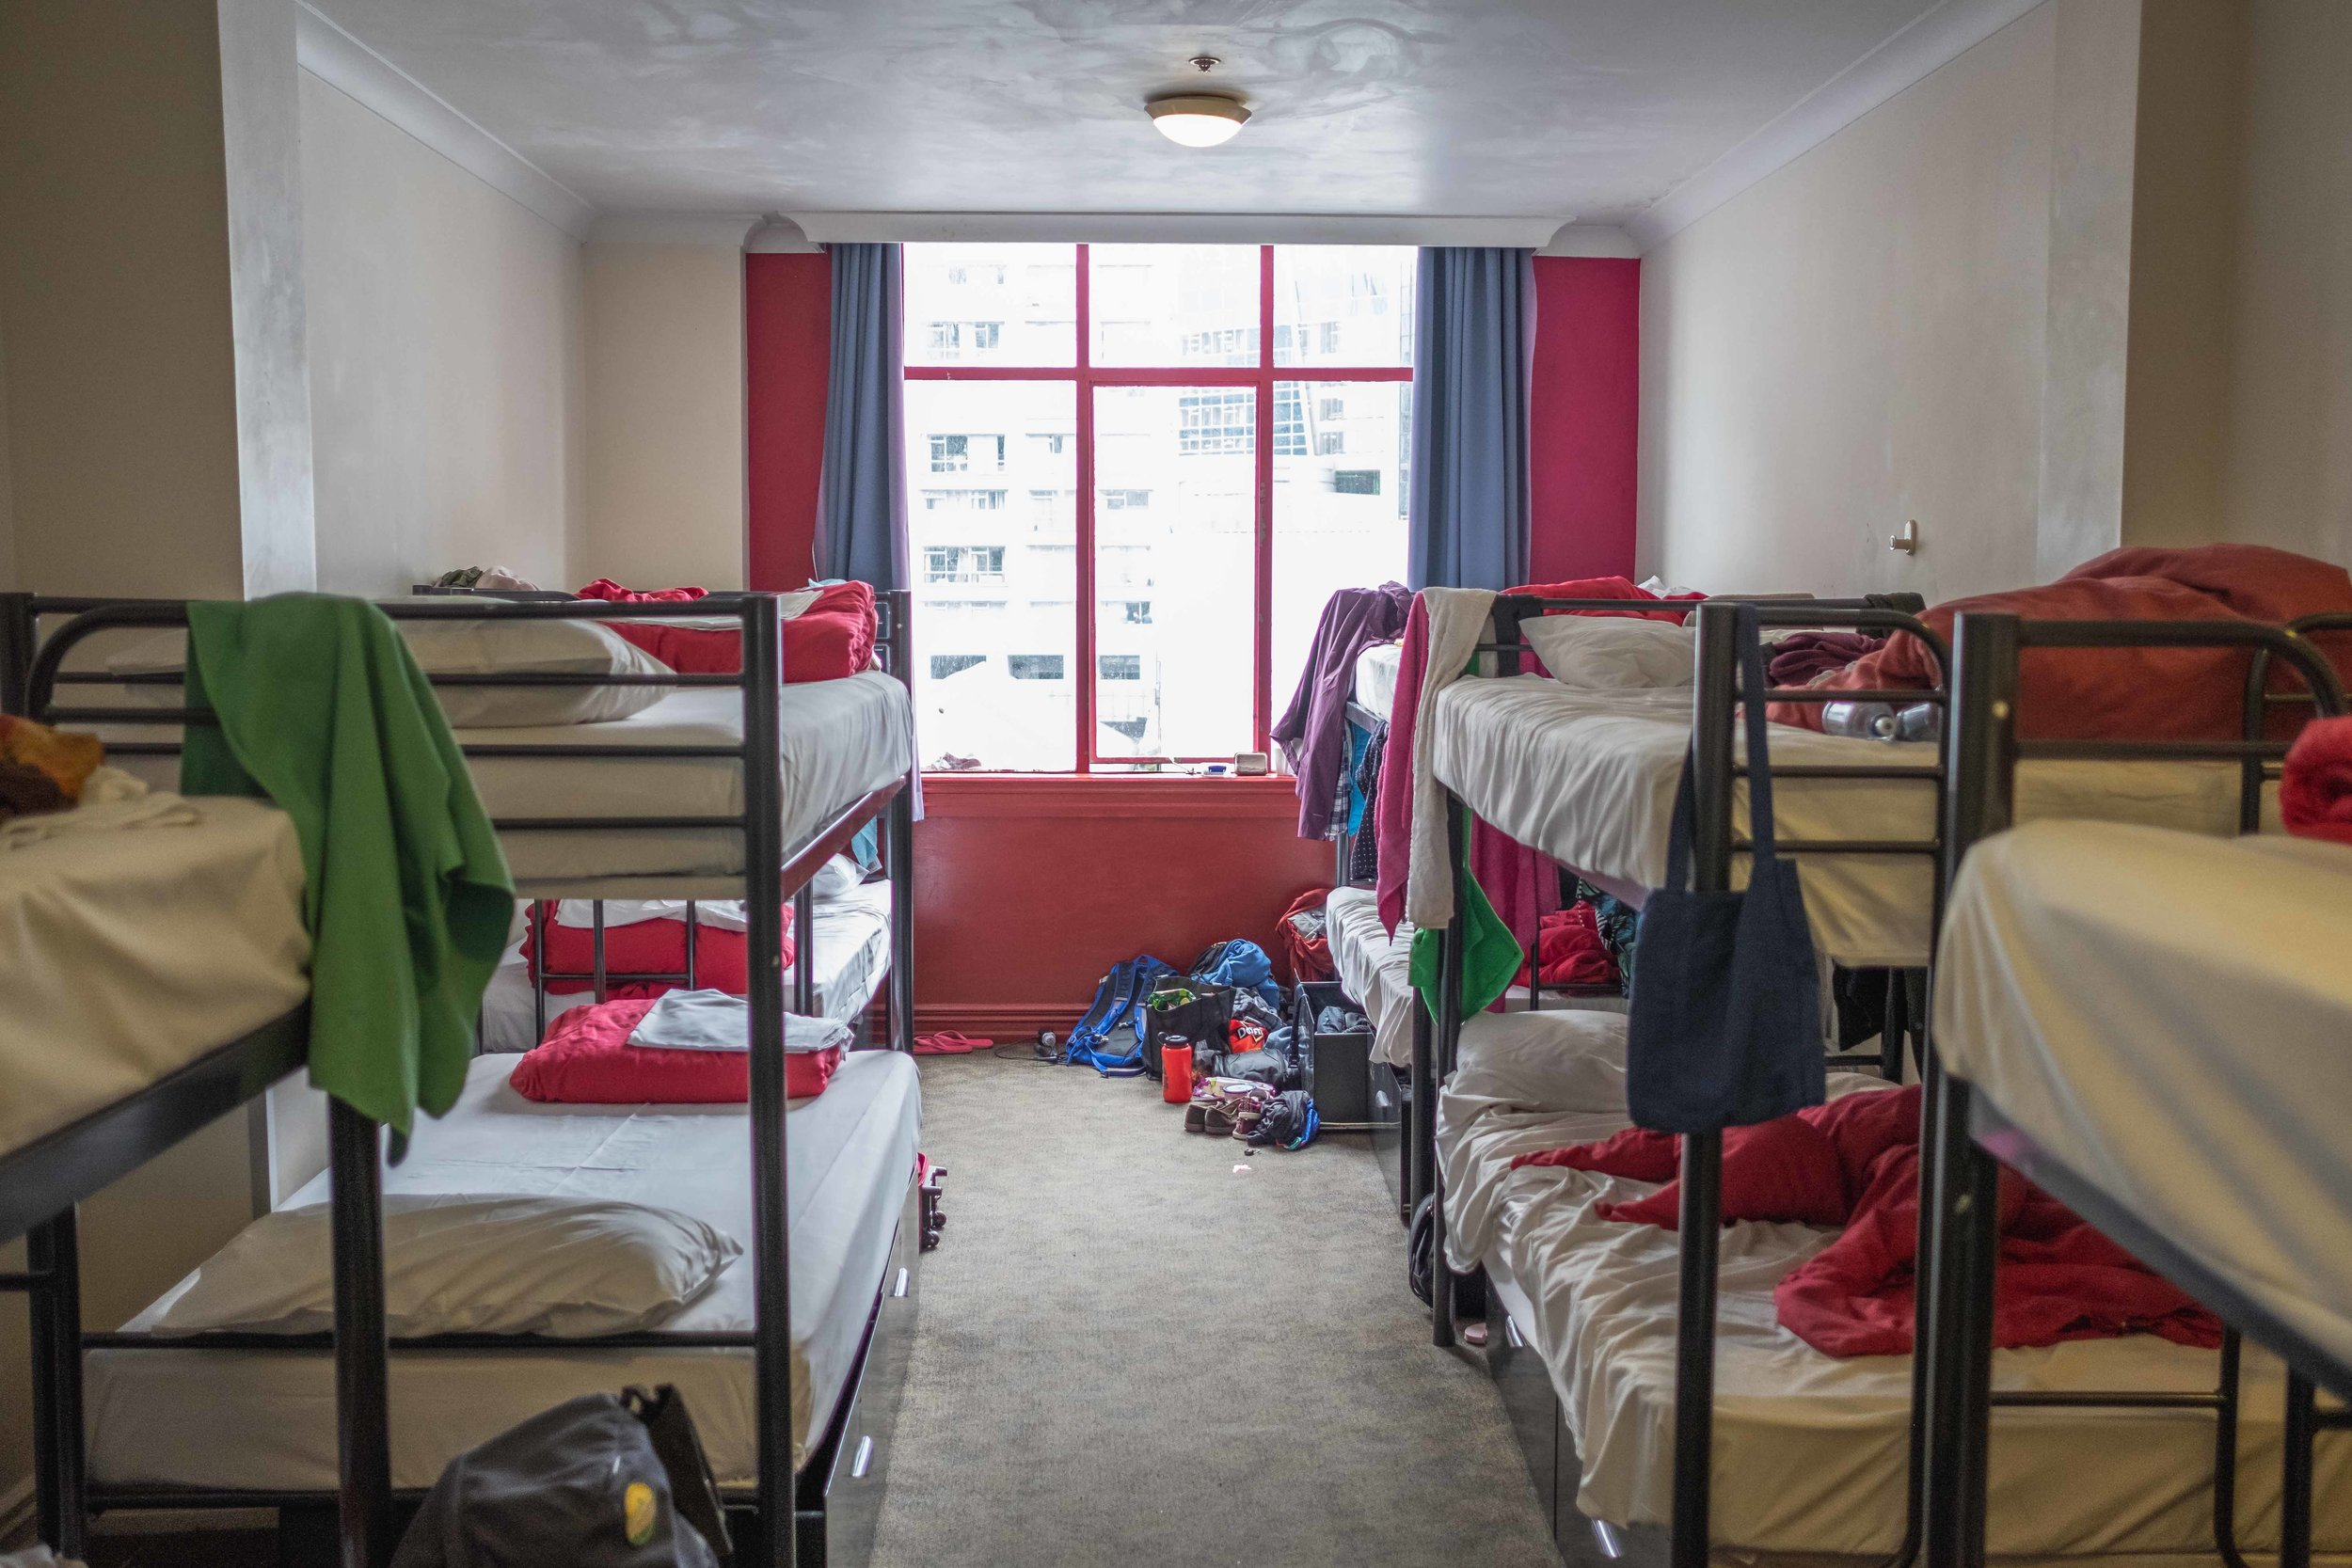 most of our hostel room! There were 12 beds and 2 outlets. . .it was a battle.